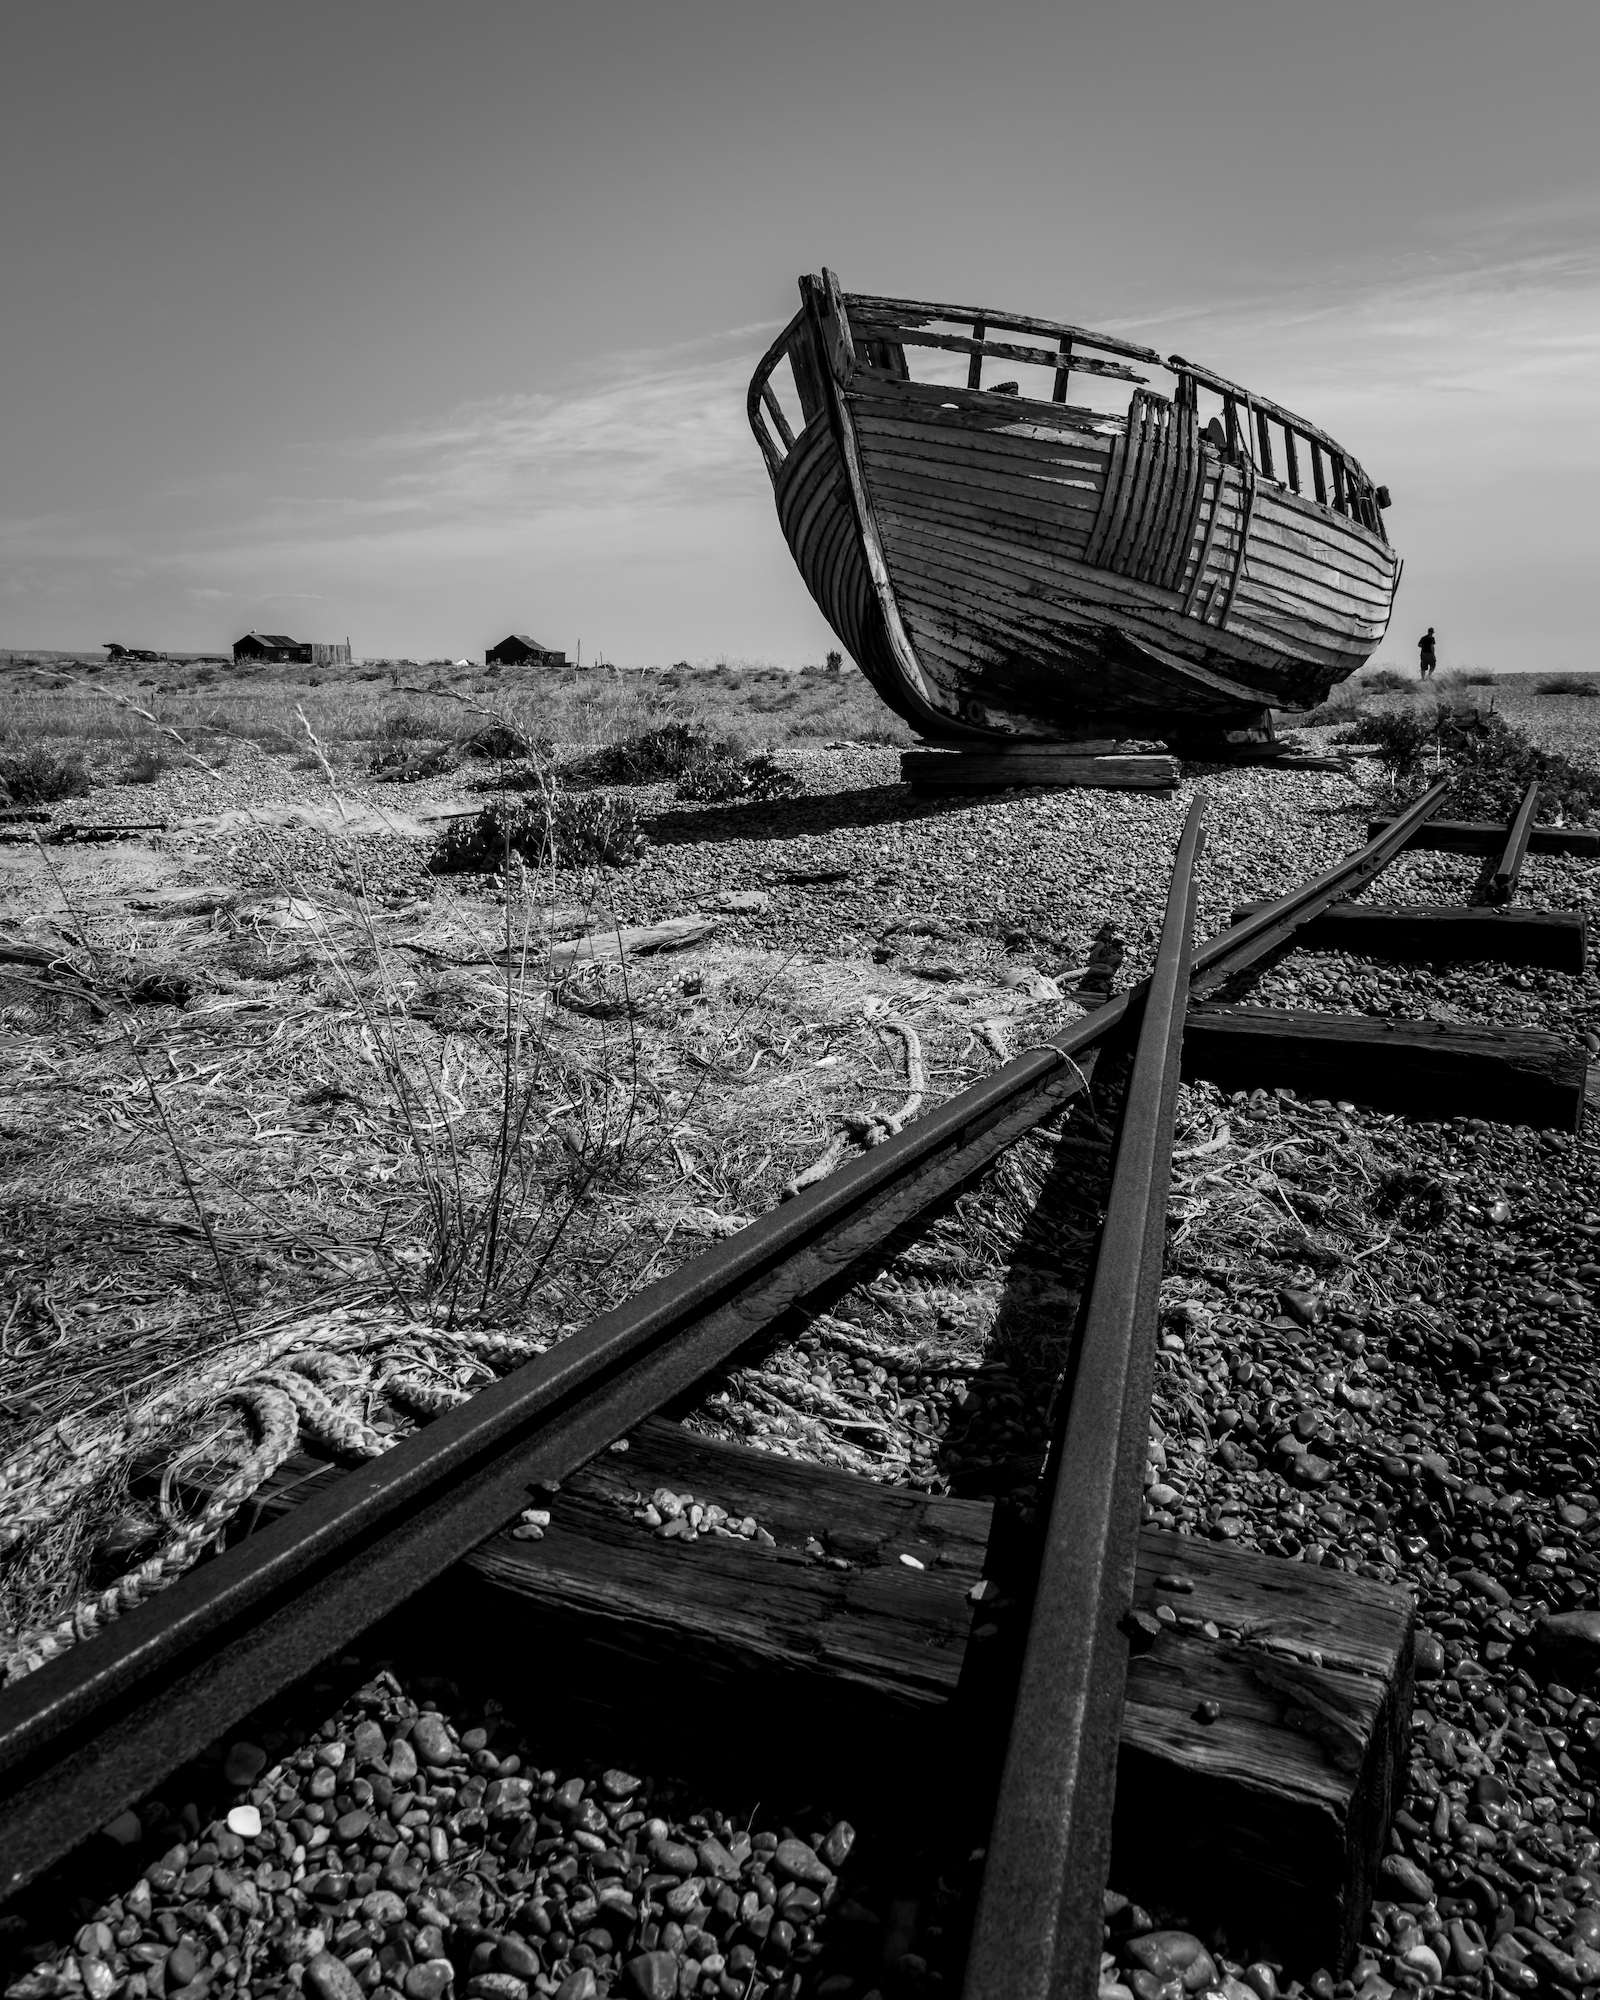 One of the many fishing boats left to rot on the beaches at Dungeness.